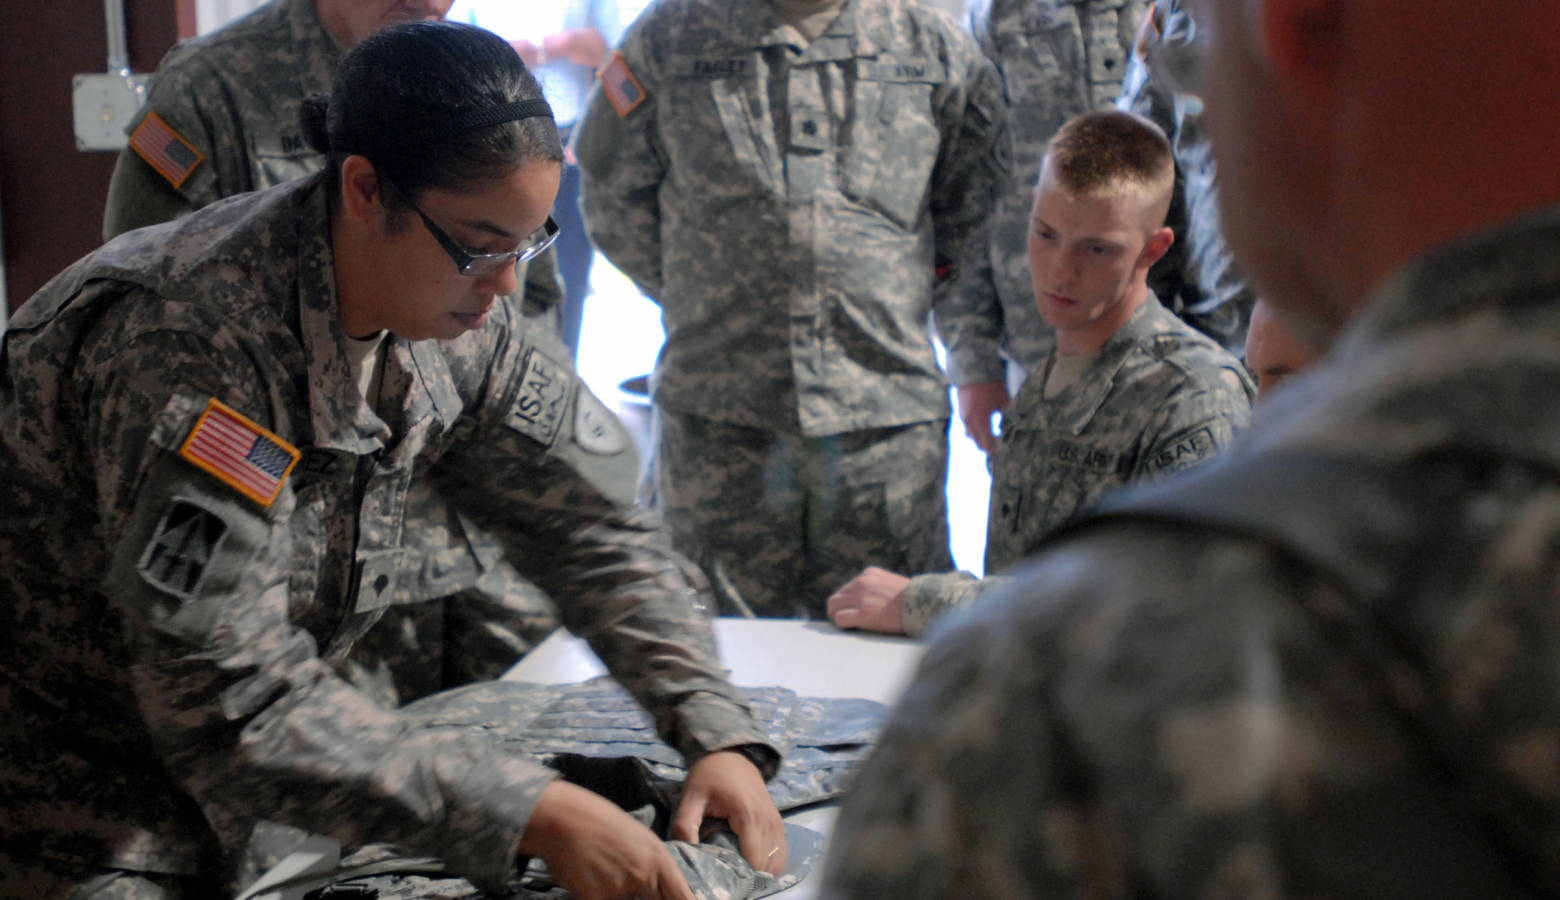 Indiana National Guard soldiers are issued equipment at Camp Atterbury. (Indiana National Guard)